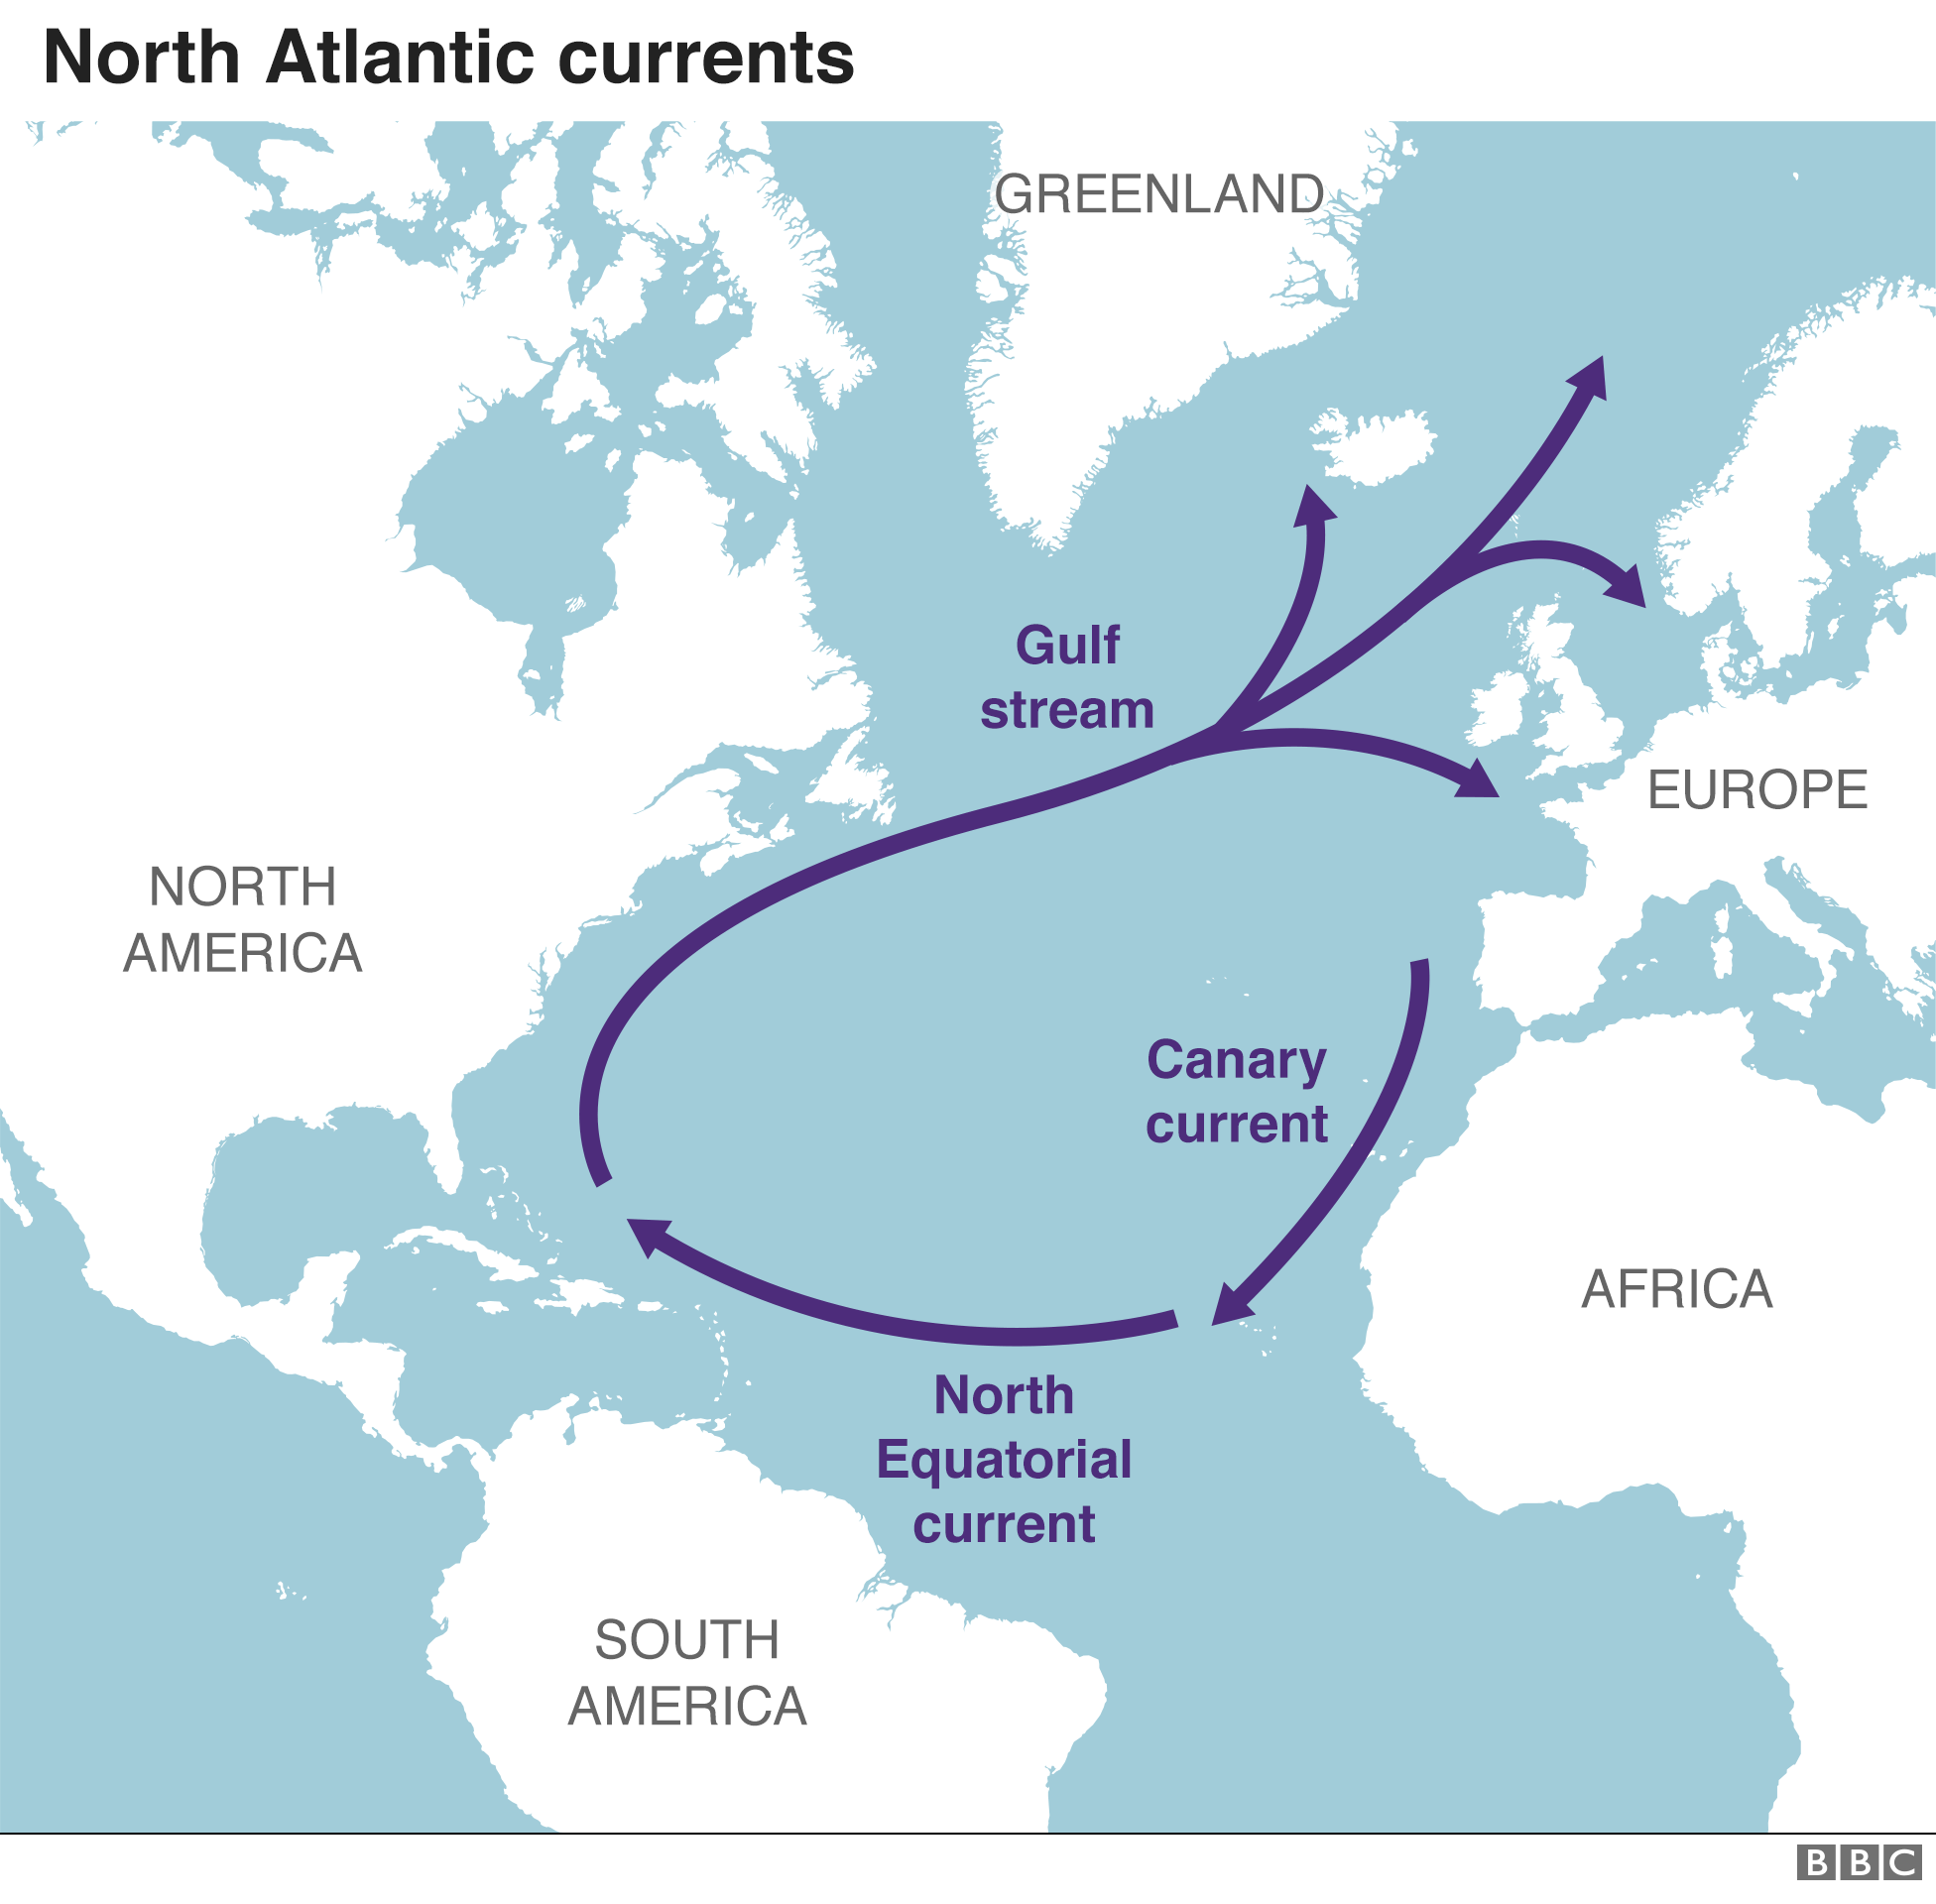 Map of North Atlantic currents